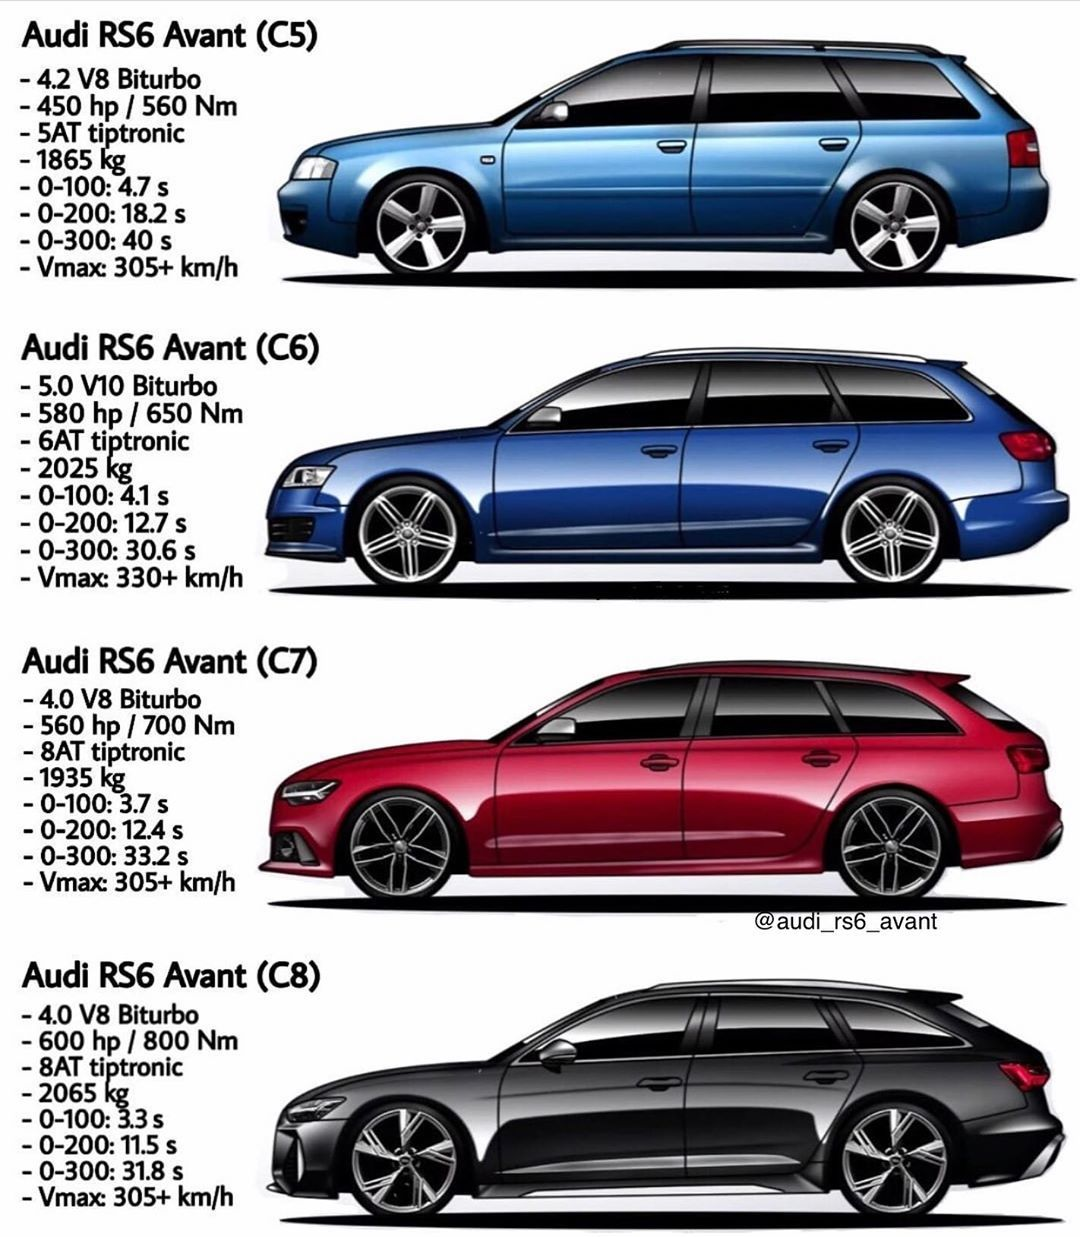 Audi Rs6 C7 4 0 Tfsi On Instagram Which Rs6 Generation For You And Why Follow My Partners Audi Rs6 Audi Wagon Audi Rs6 C7